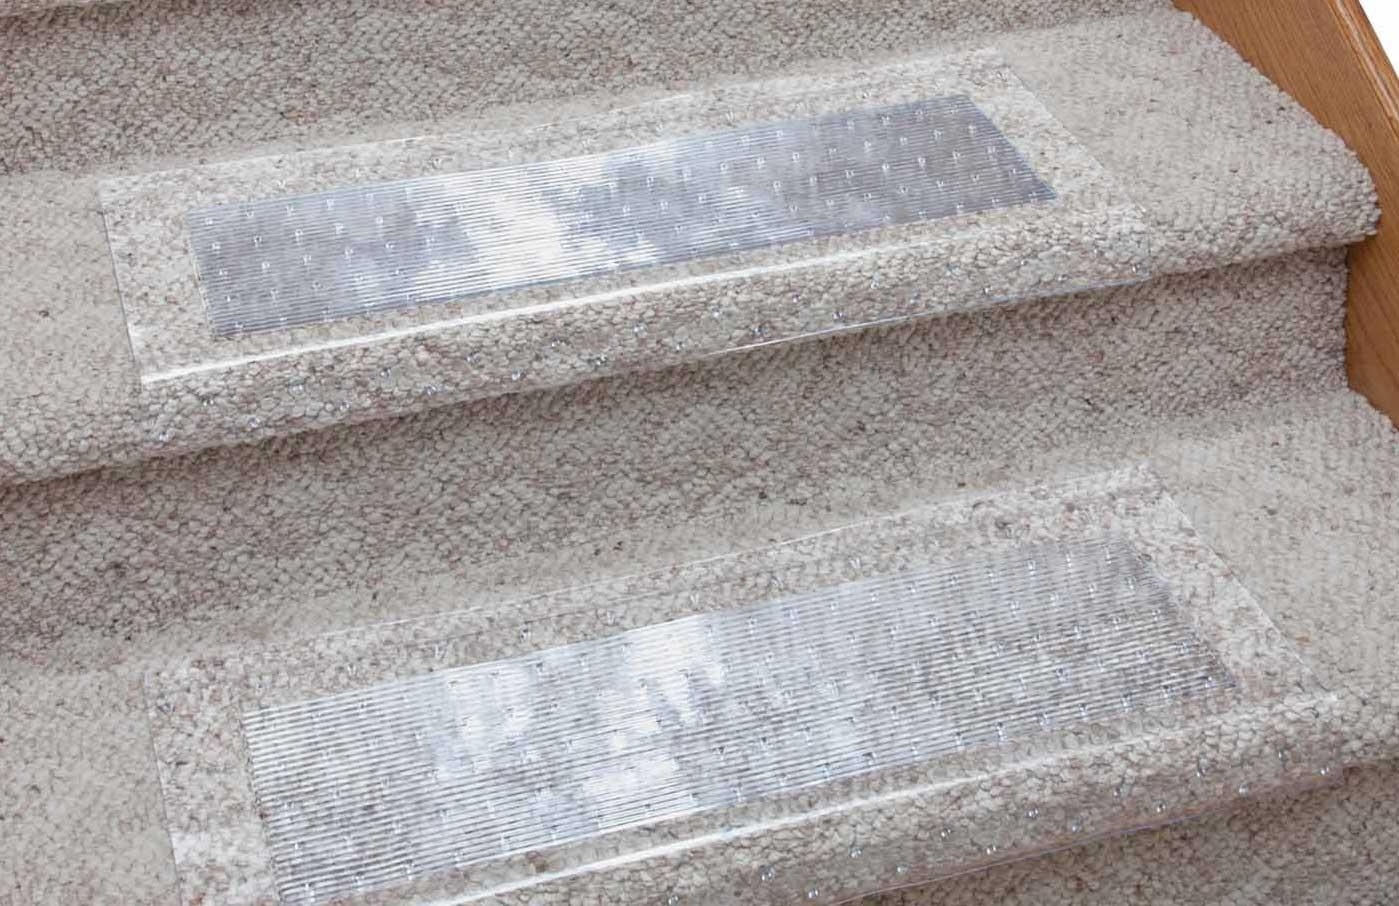 Vinyl Carpet Protector On Stairs Interior Home Design In Stair Tread Carpet Protectors (#18 of 20)